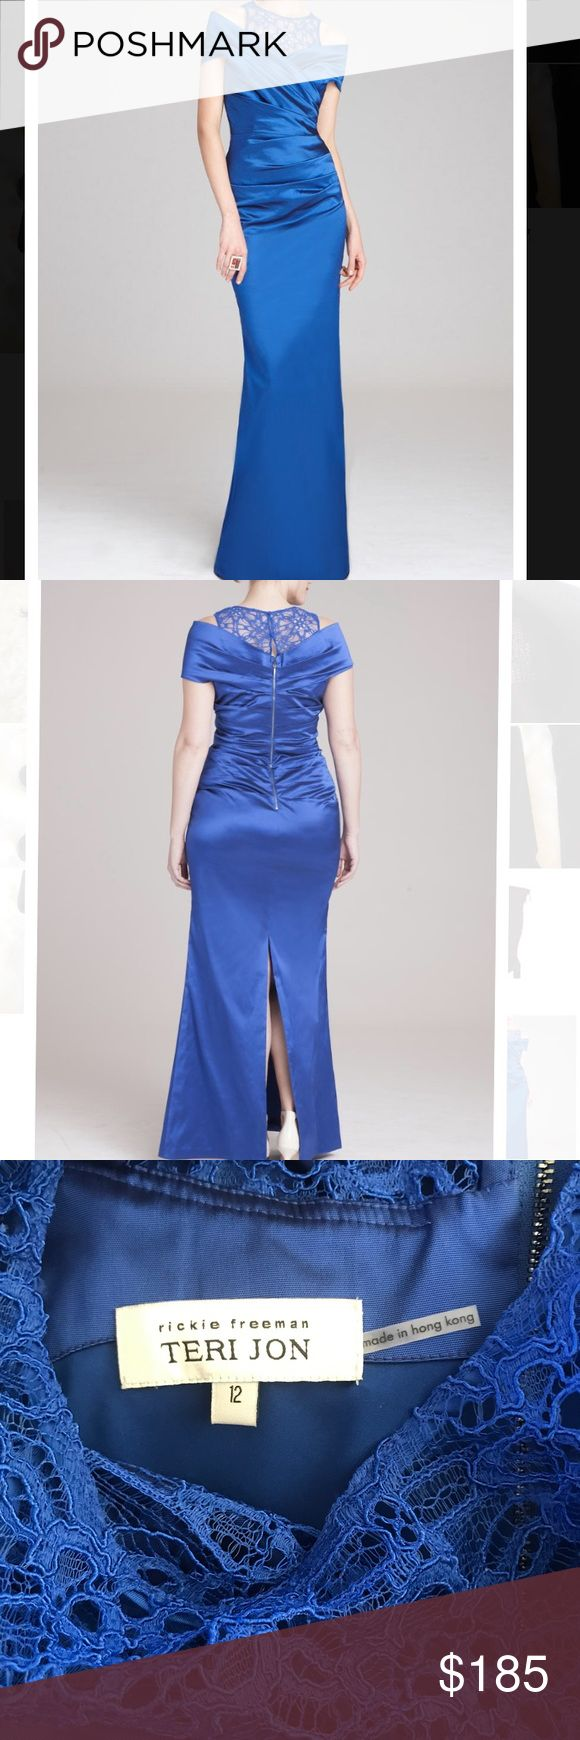 Teri Jon gown. , By adding the lace neckline this evening gown spices up what is classic gown.  - Fabric Content: 72% Acetate, 20% Nylon, 3% Elastane  - Ruching in the front bodice and back  - Lace neckline is the same in the back  - Sewn in lining  - Slit  - Exposed zipper down the back middle  - Portrait collar  - Perfect For: Mother of the Bride or Groom, Black Tie Affair, Destination Wedding Size is 12, but they run smaller, so it will be perfect for size 8-10. Rickie Freeman for Teri…